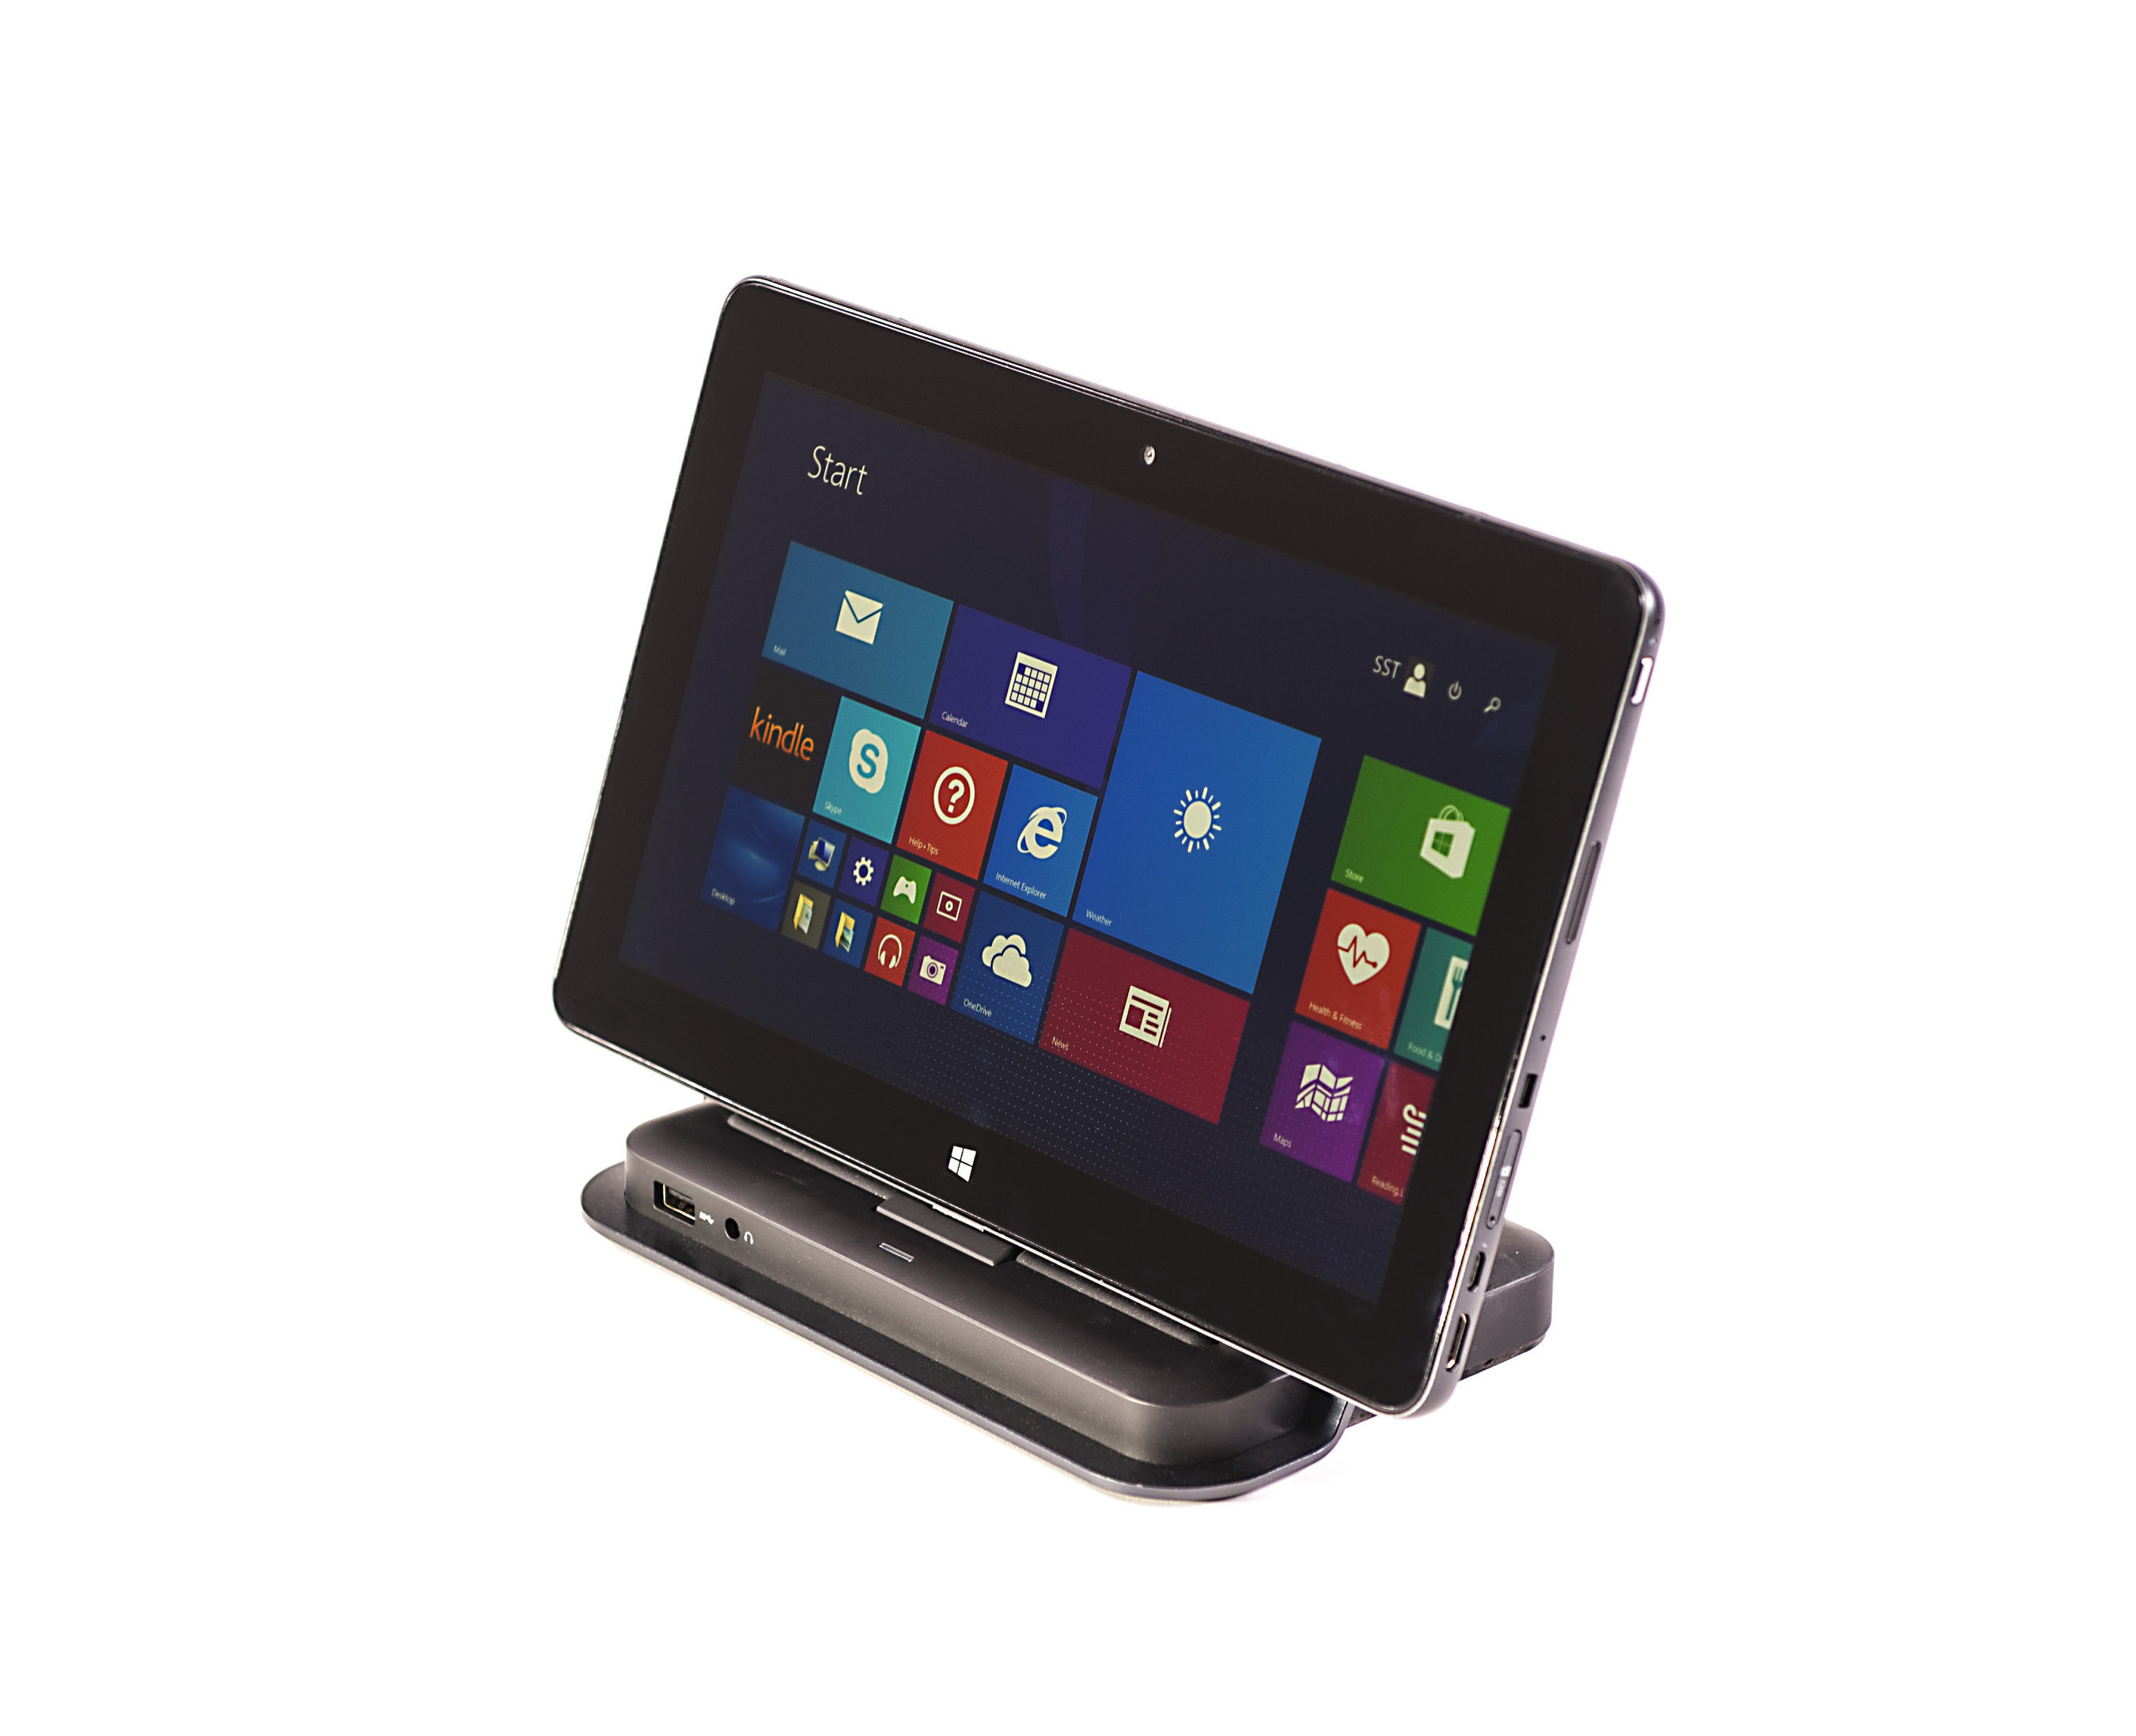 New Secure Venue Tablet has an integrated Eclypt drive giving it the ability to secure data up to Top Secret ...